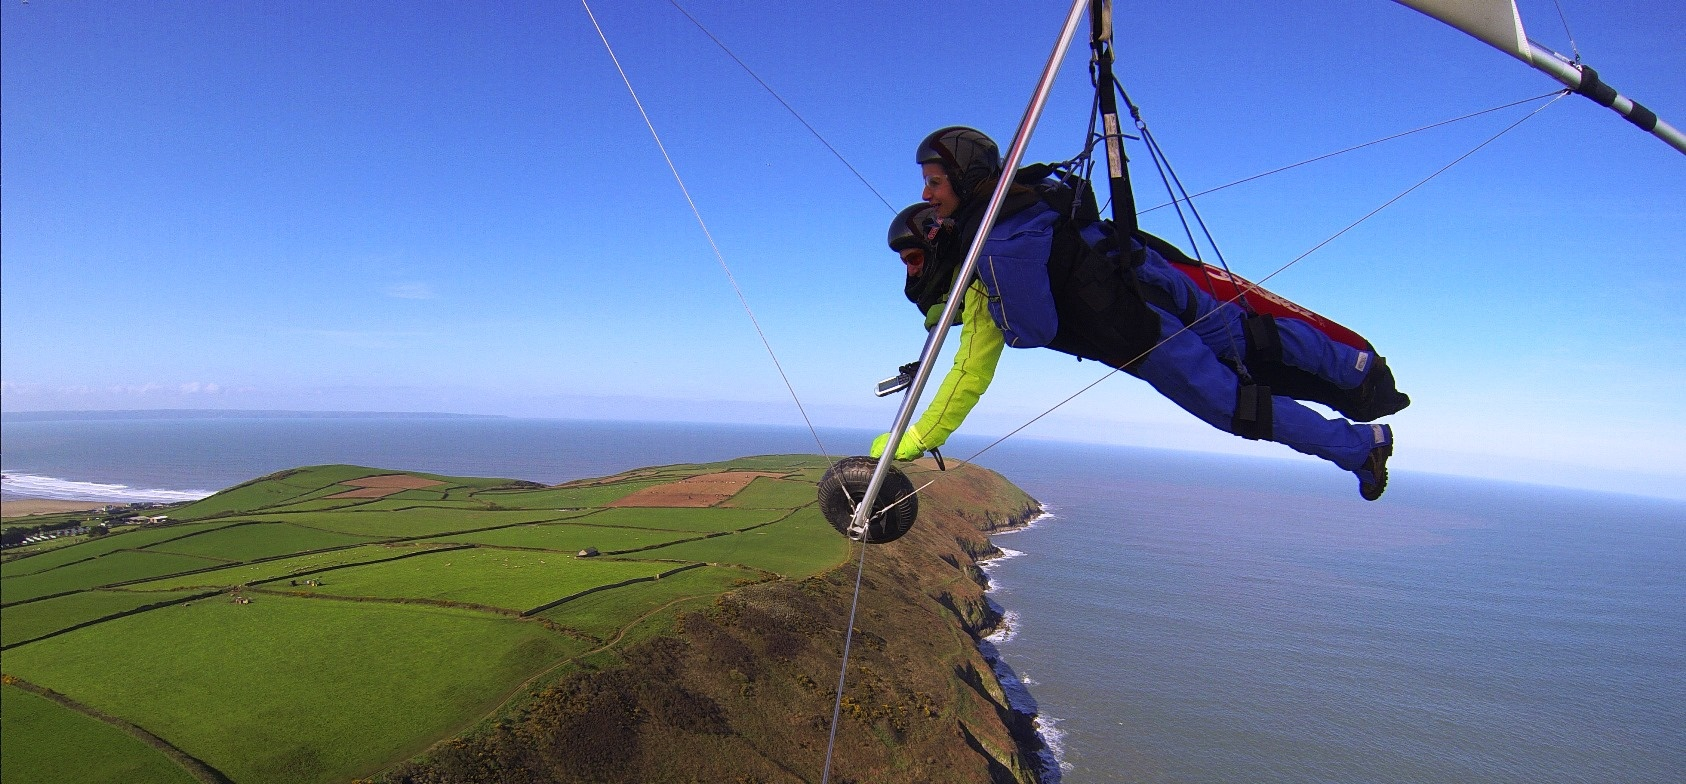 Hang Gliding Experience in Devon-5